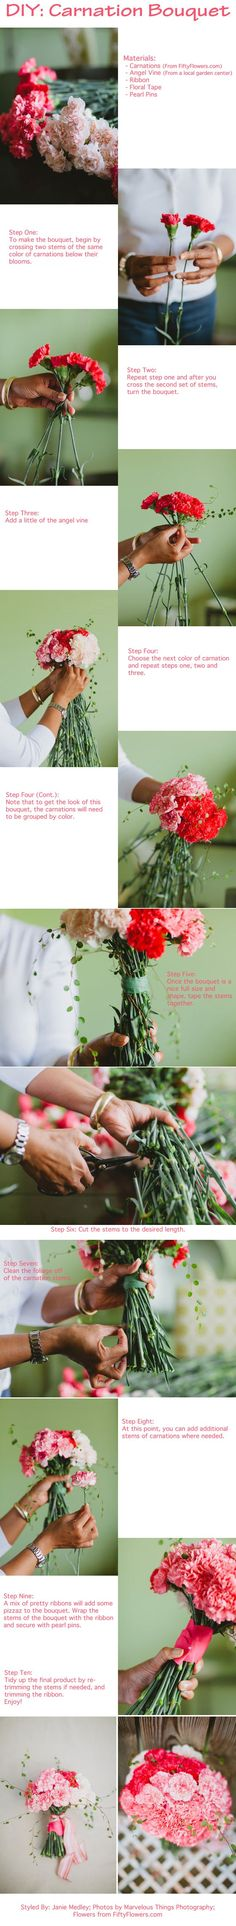 DIY Carnation Bouquet - Learn How To create your own gorgeous wedding bouquet… Spring Wedding Bouquets, Rose Wedding Bouquet, Diy Wedding Flowers, Rose Bouquet, Bridesmaid Bouquets, Wedding Ideas, Carnation Bouquet, Hand Bouquet, Carnations